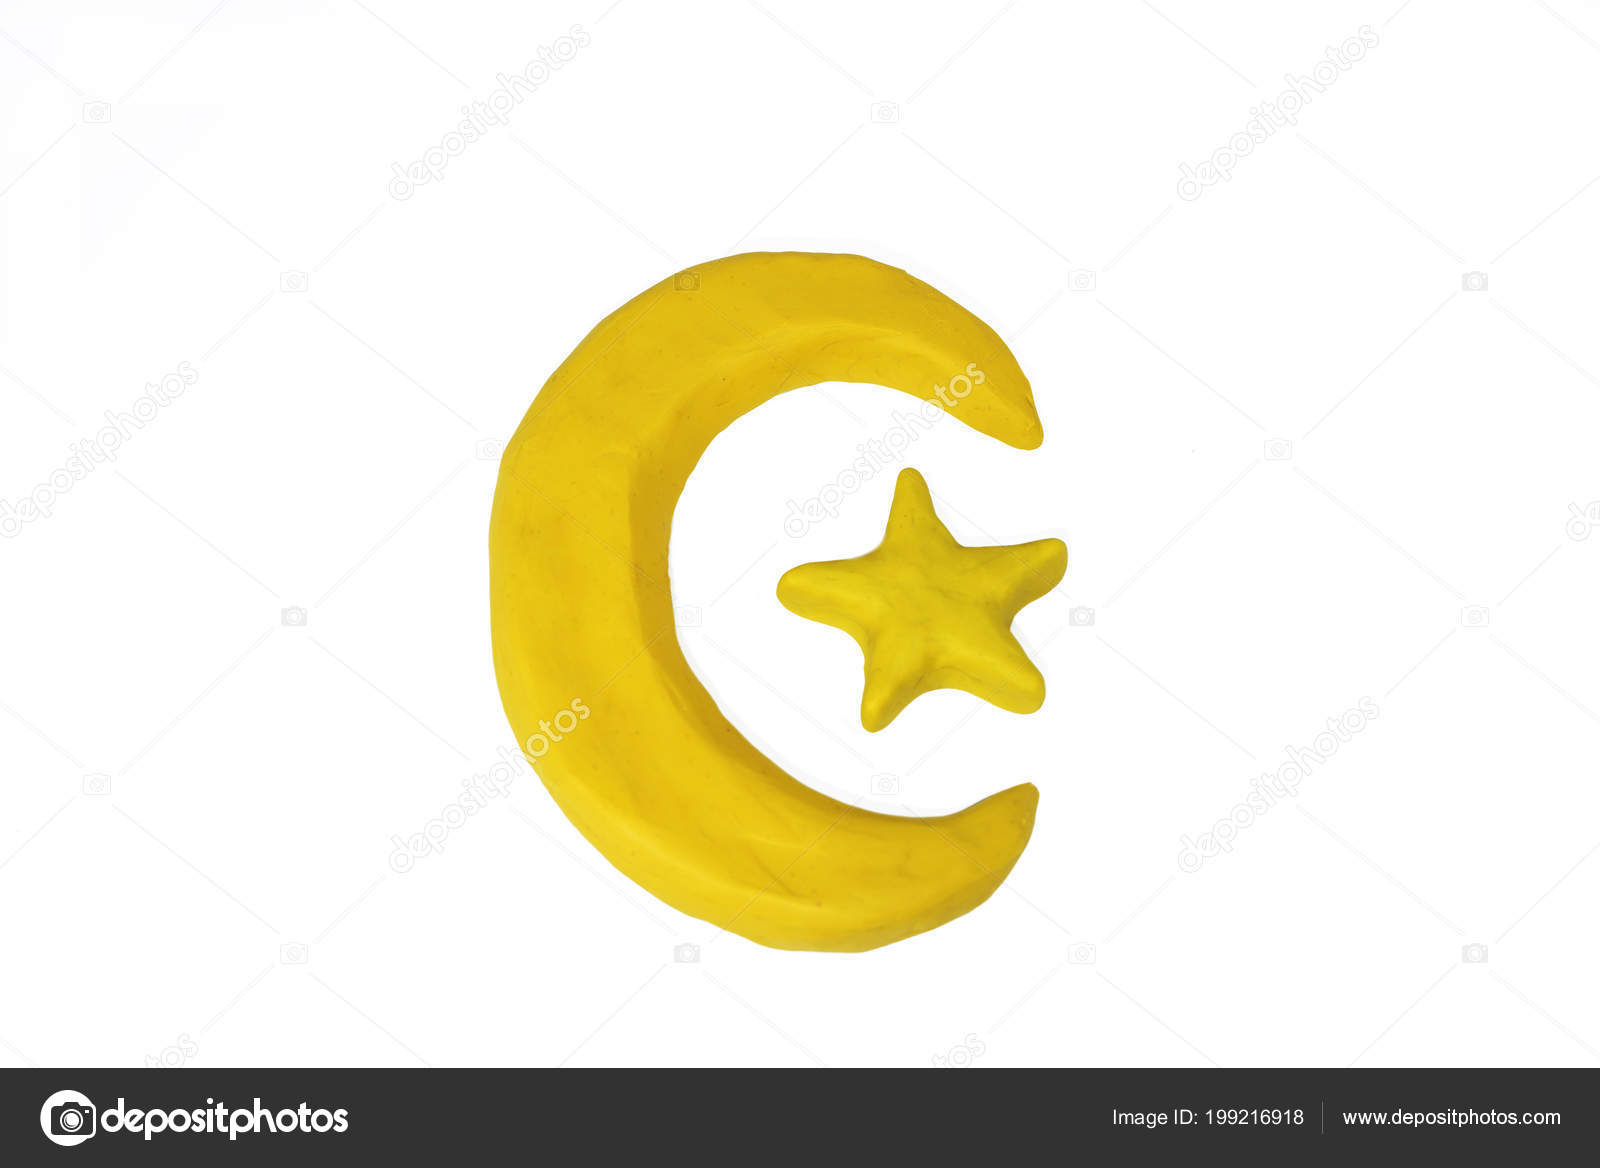 Symbols Islam Objects Made Play Clay Abstract Isolated Photo Stock